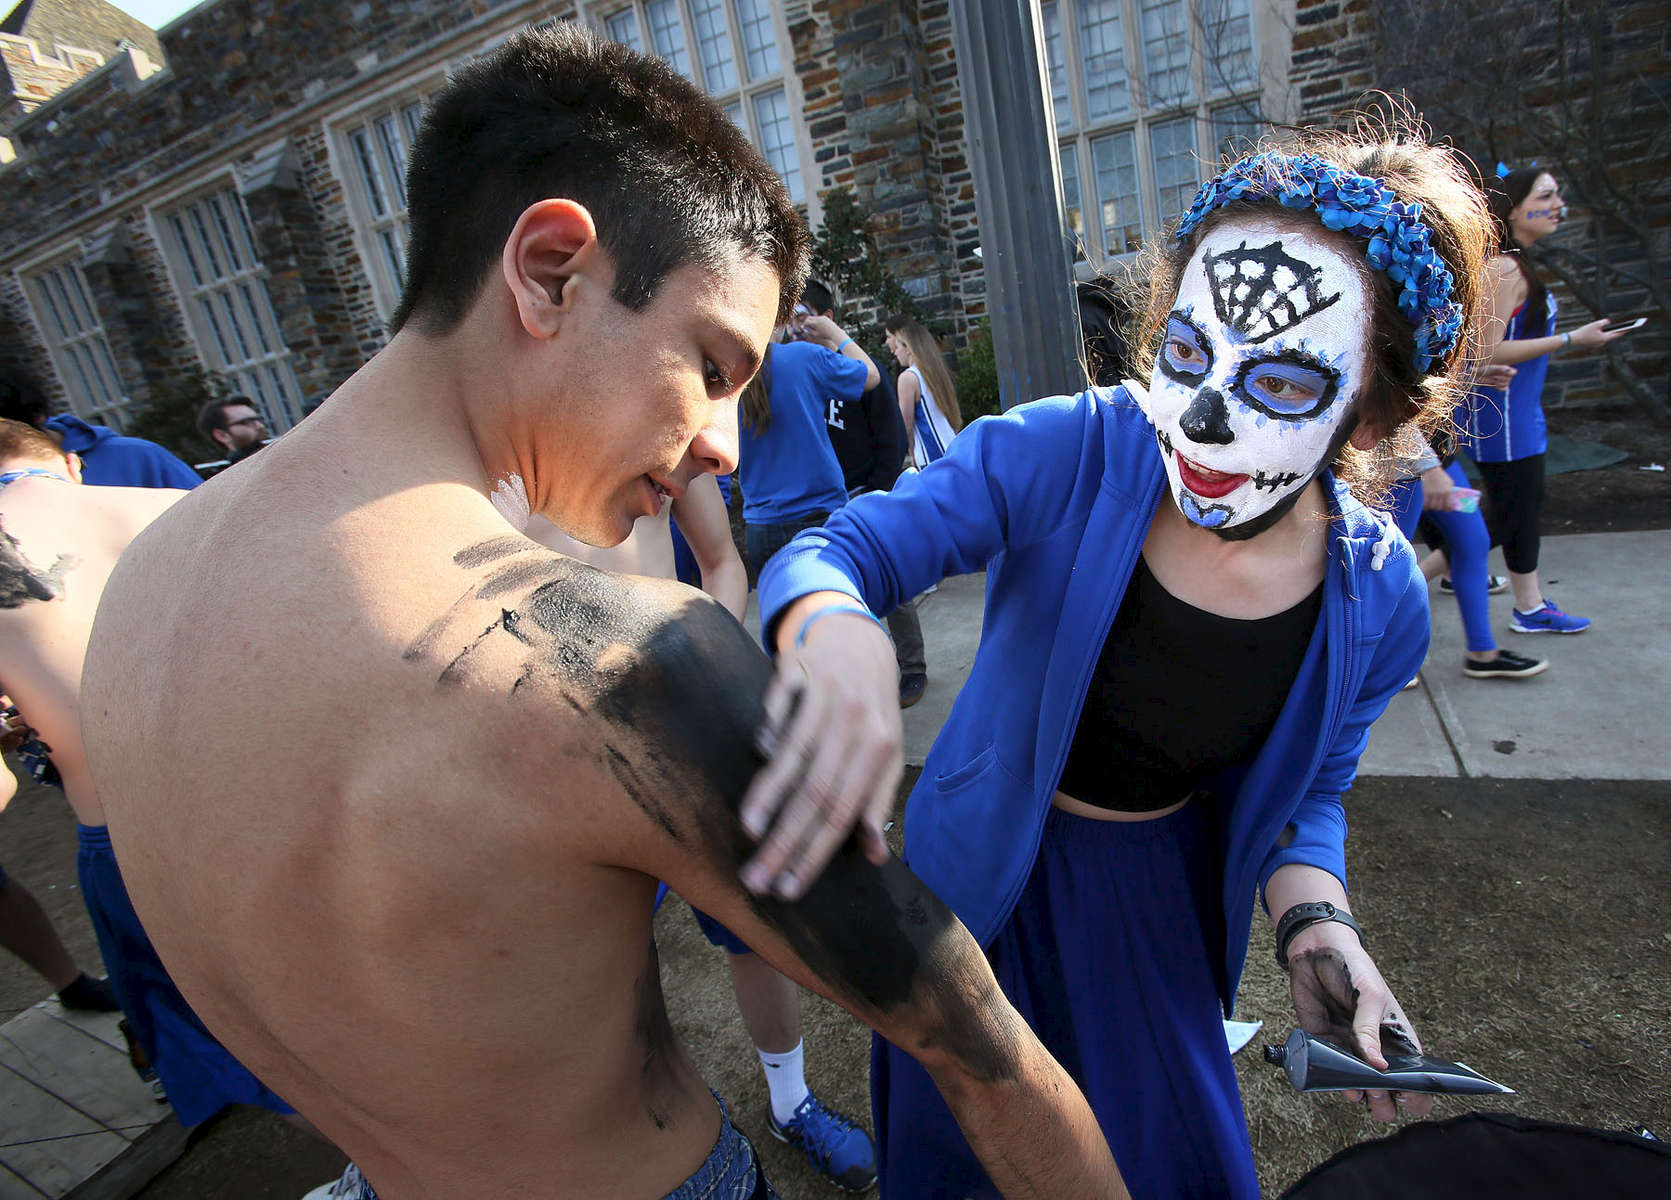 Second Place | Multiple PhotosMark Dolejs, Daily DispatchDuke junior Grace Chang applies paint to sophomore Tavo Loaiza as they wait outside before the start of the Duke Blue Devils and North Carolina Tar Heels college basketball game at Cameron Indoor Stadium.